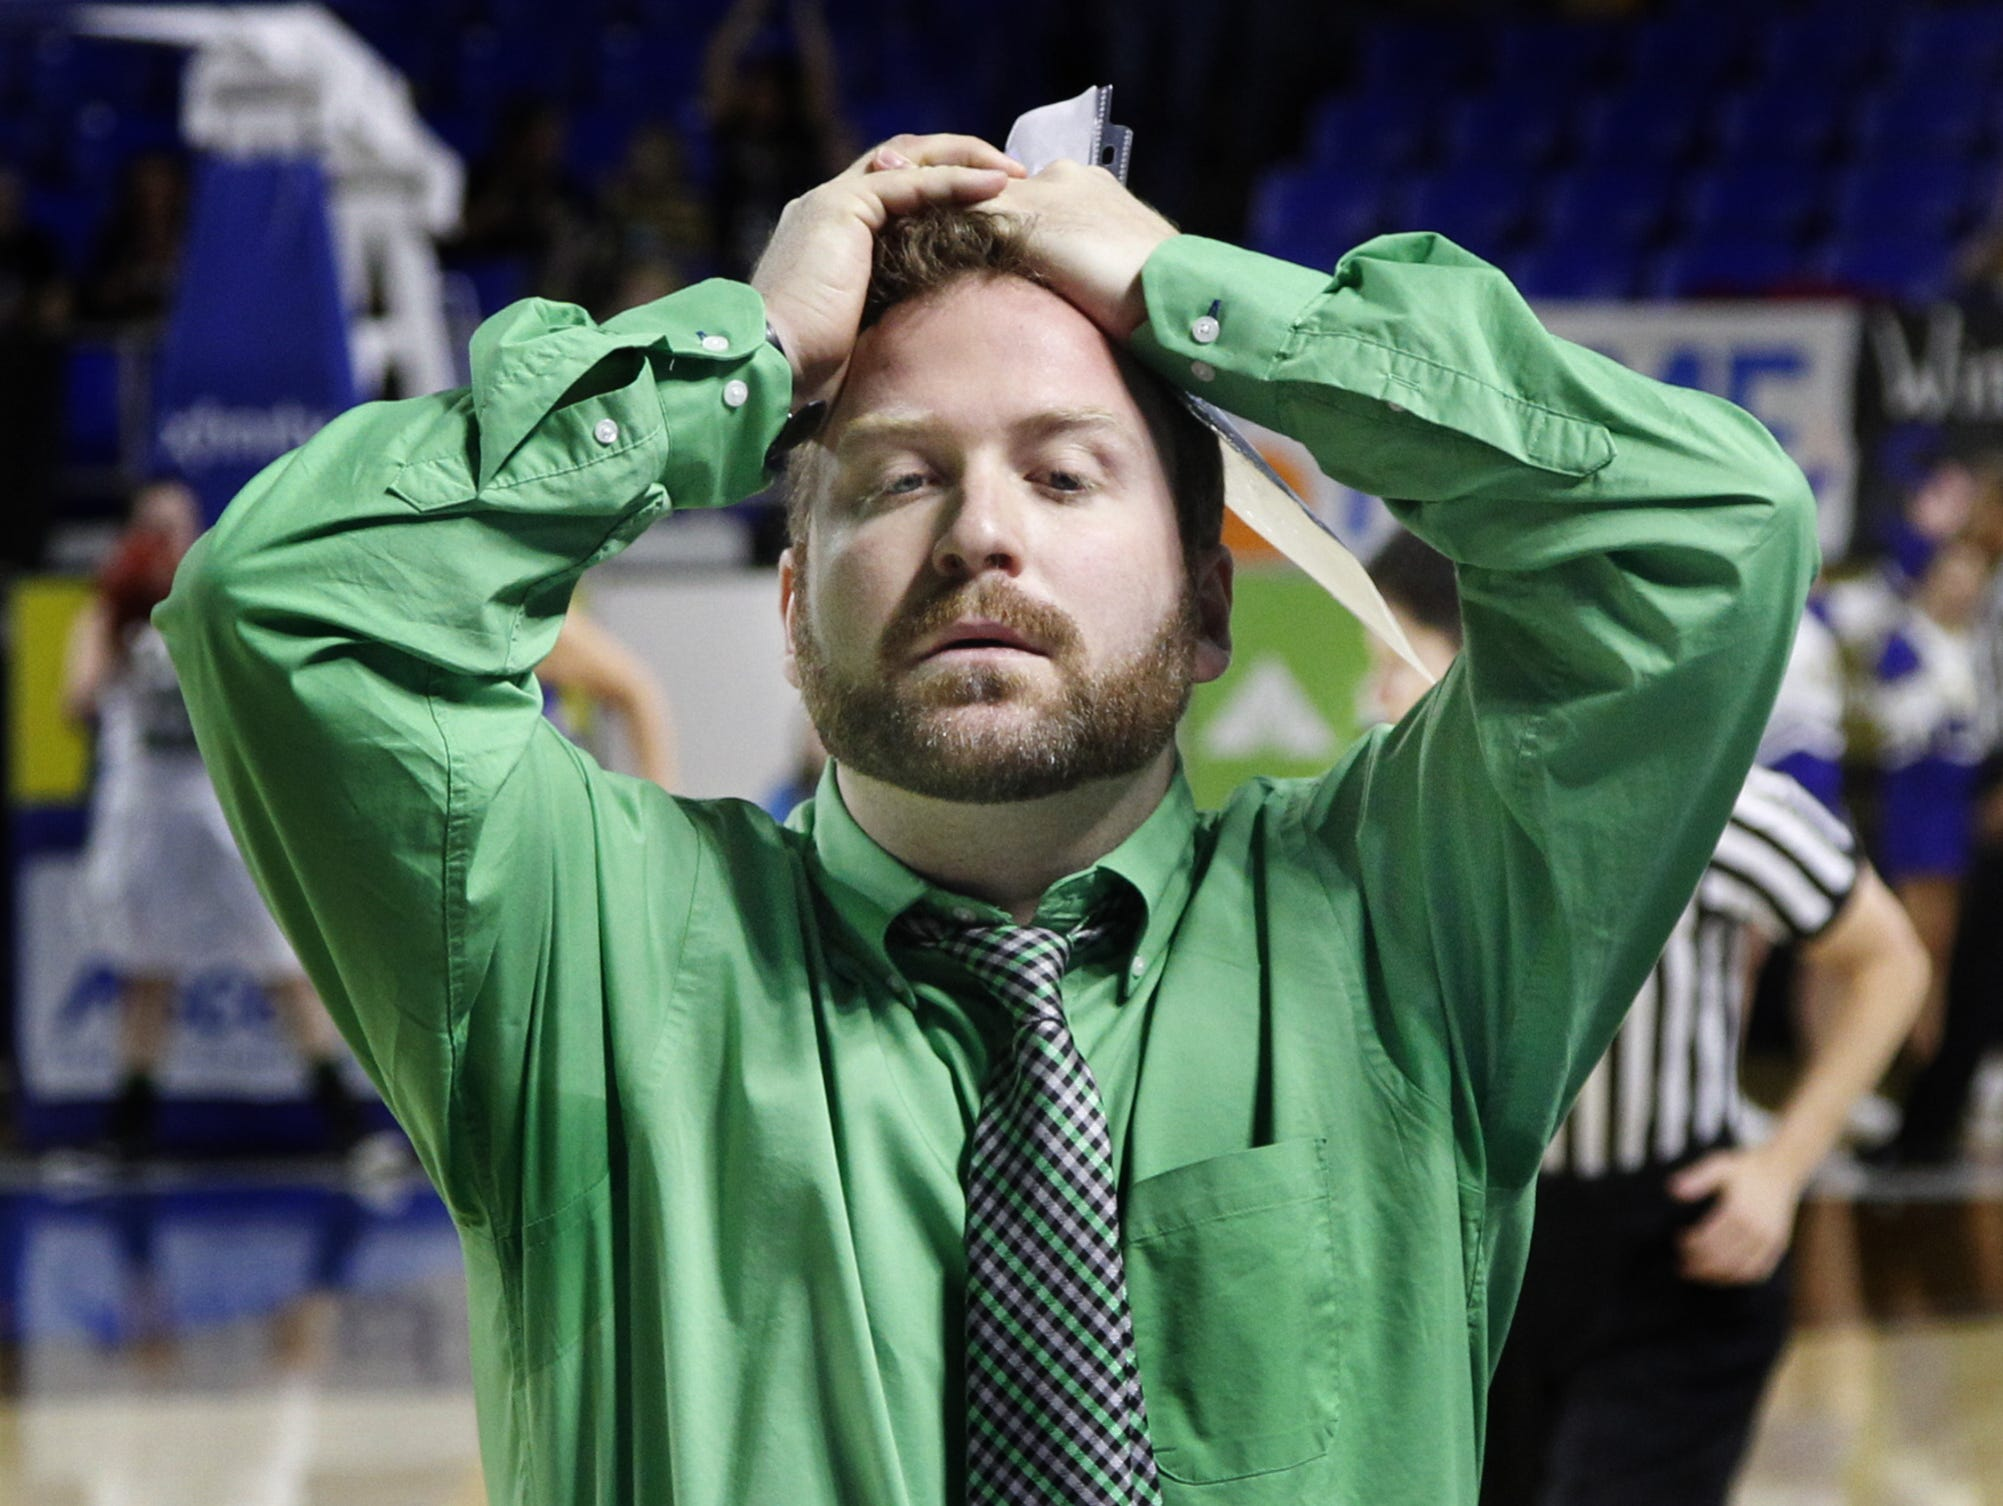 Houston County coach Sam Young reacts after a missed shot against Clarkrange during the Class A quarterfinal State Basketball Tournament in Murfreesboro during the 2014-15 season.